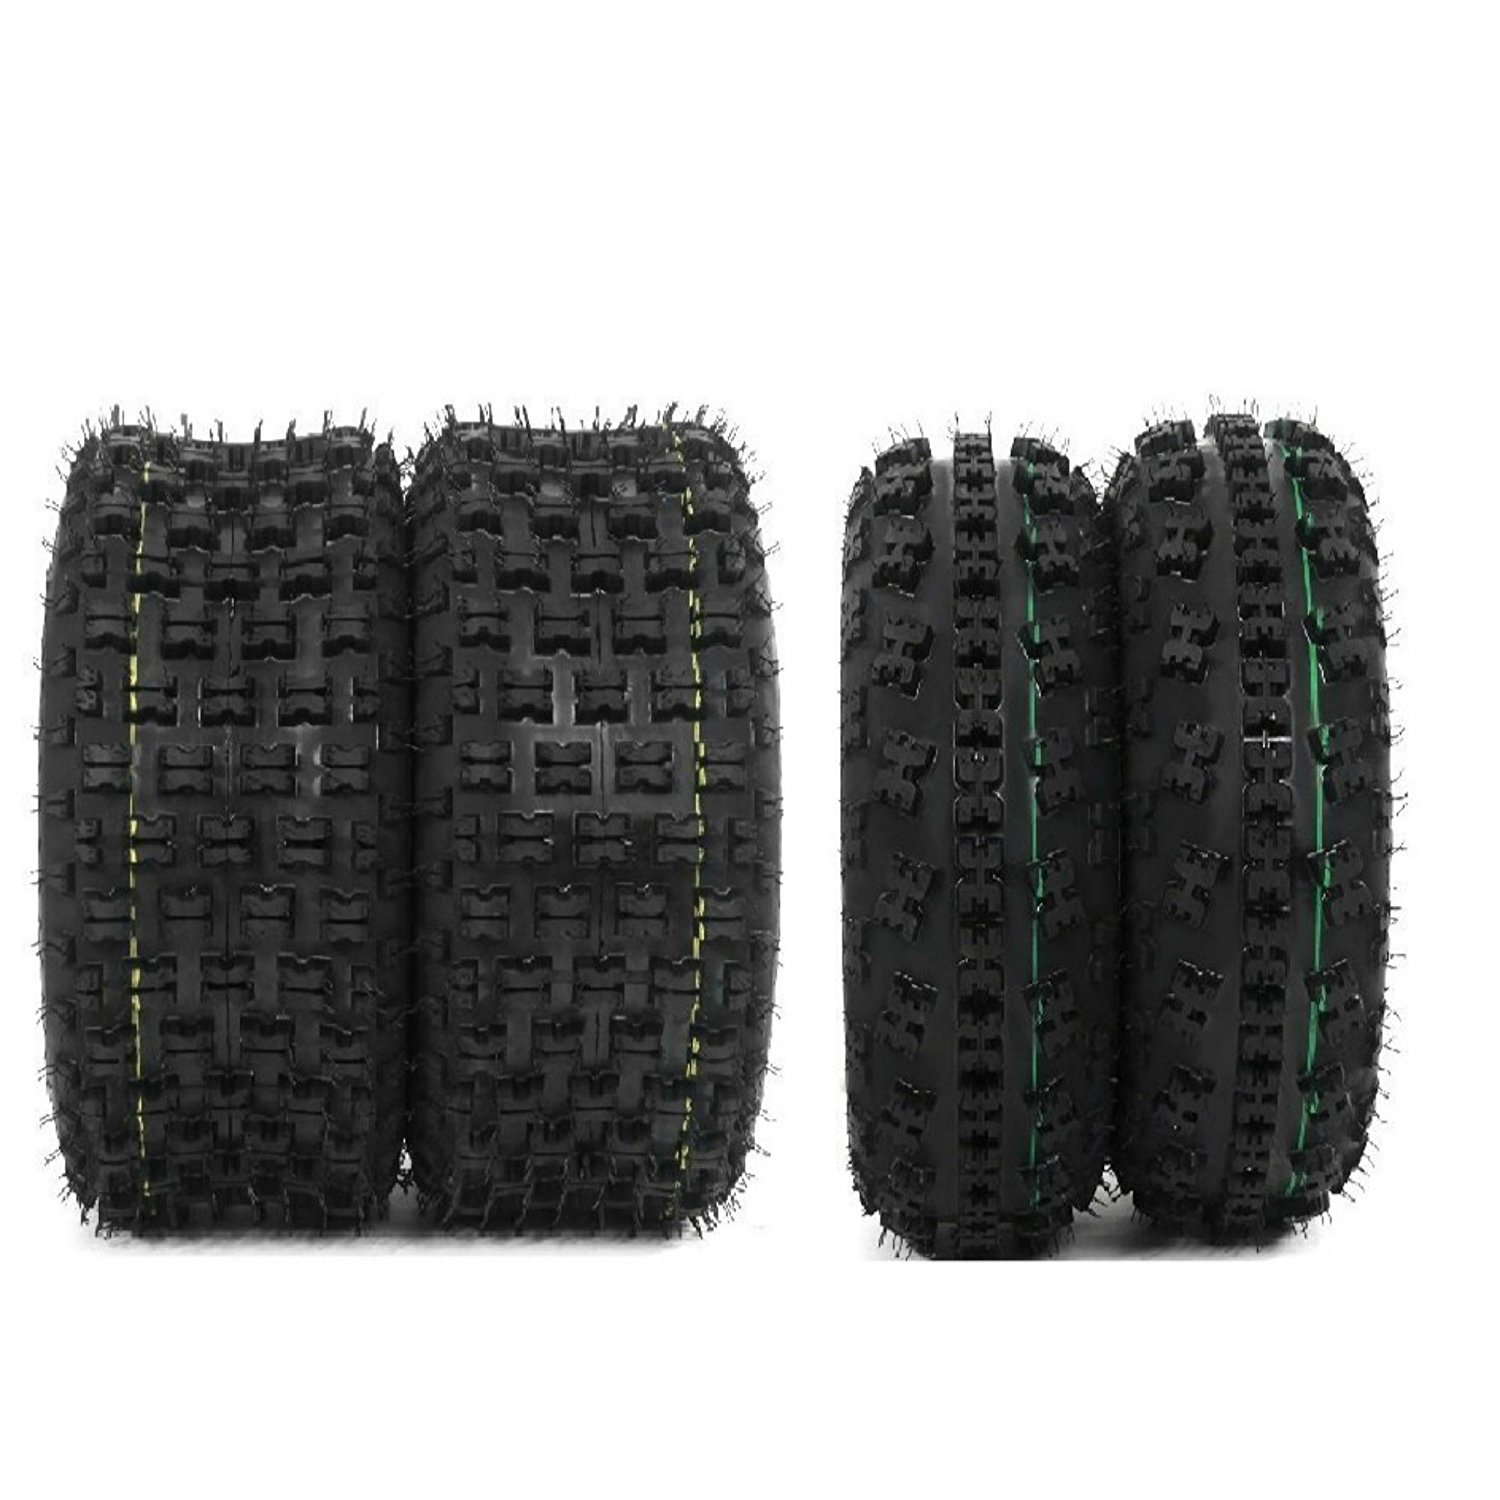 Set of 4 New Sport ATV Tires 21x7-10 Front & 20x10-9 Rear /4PR - P348